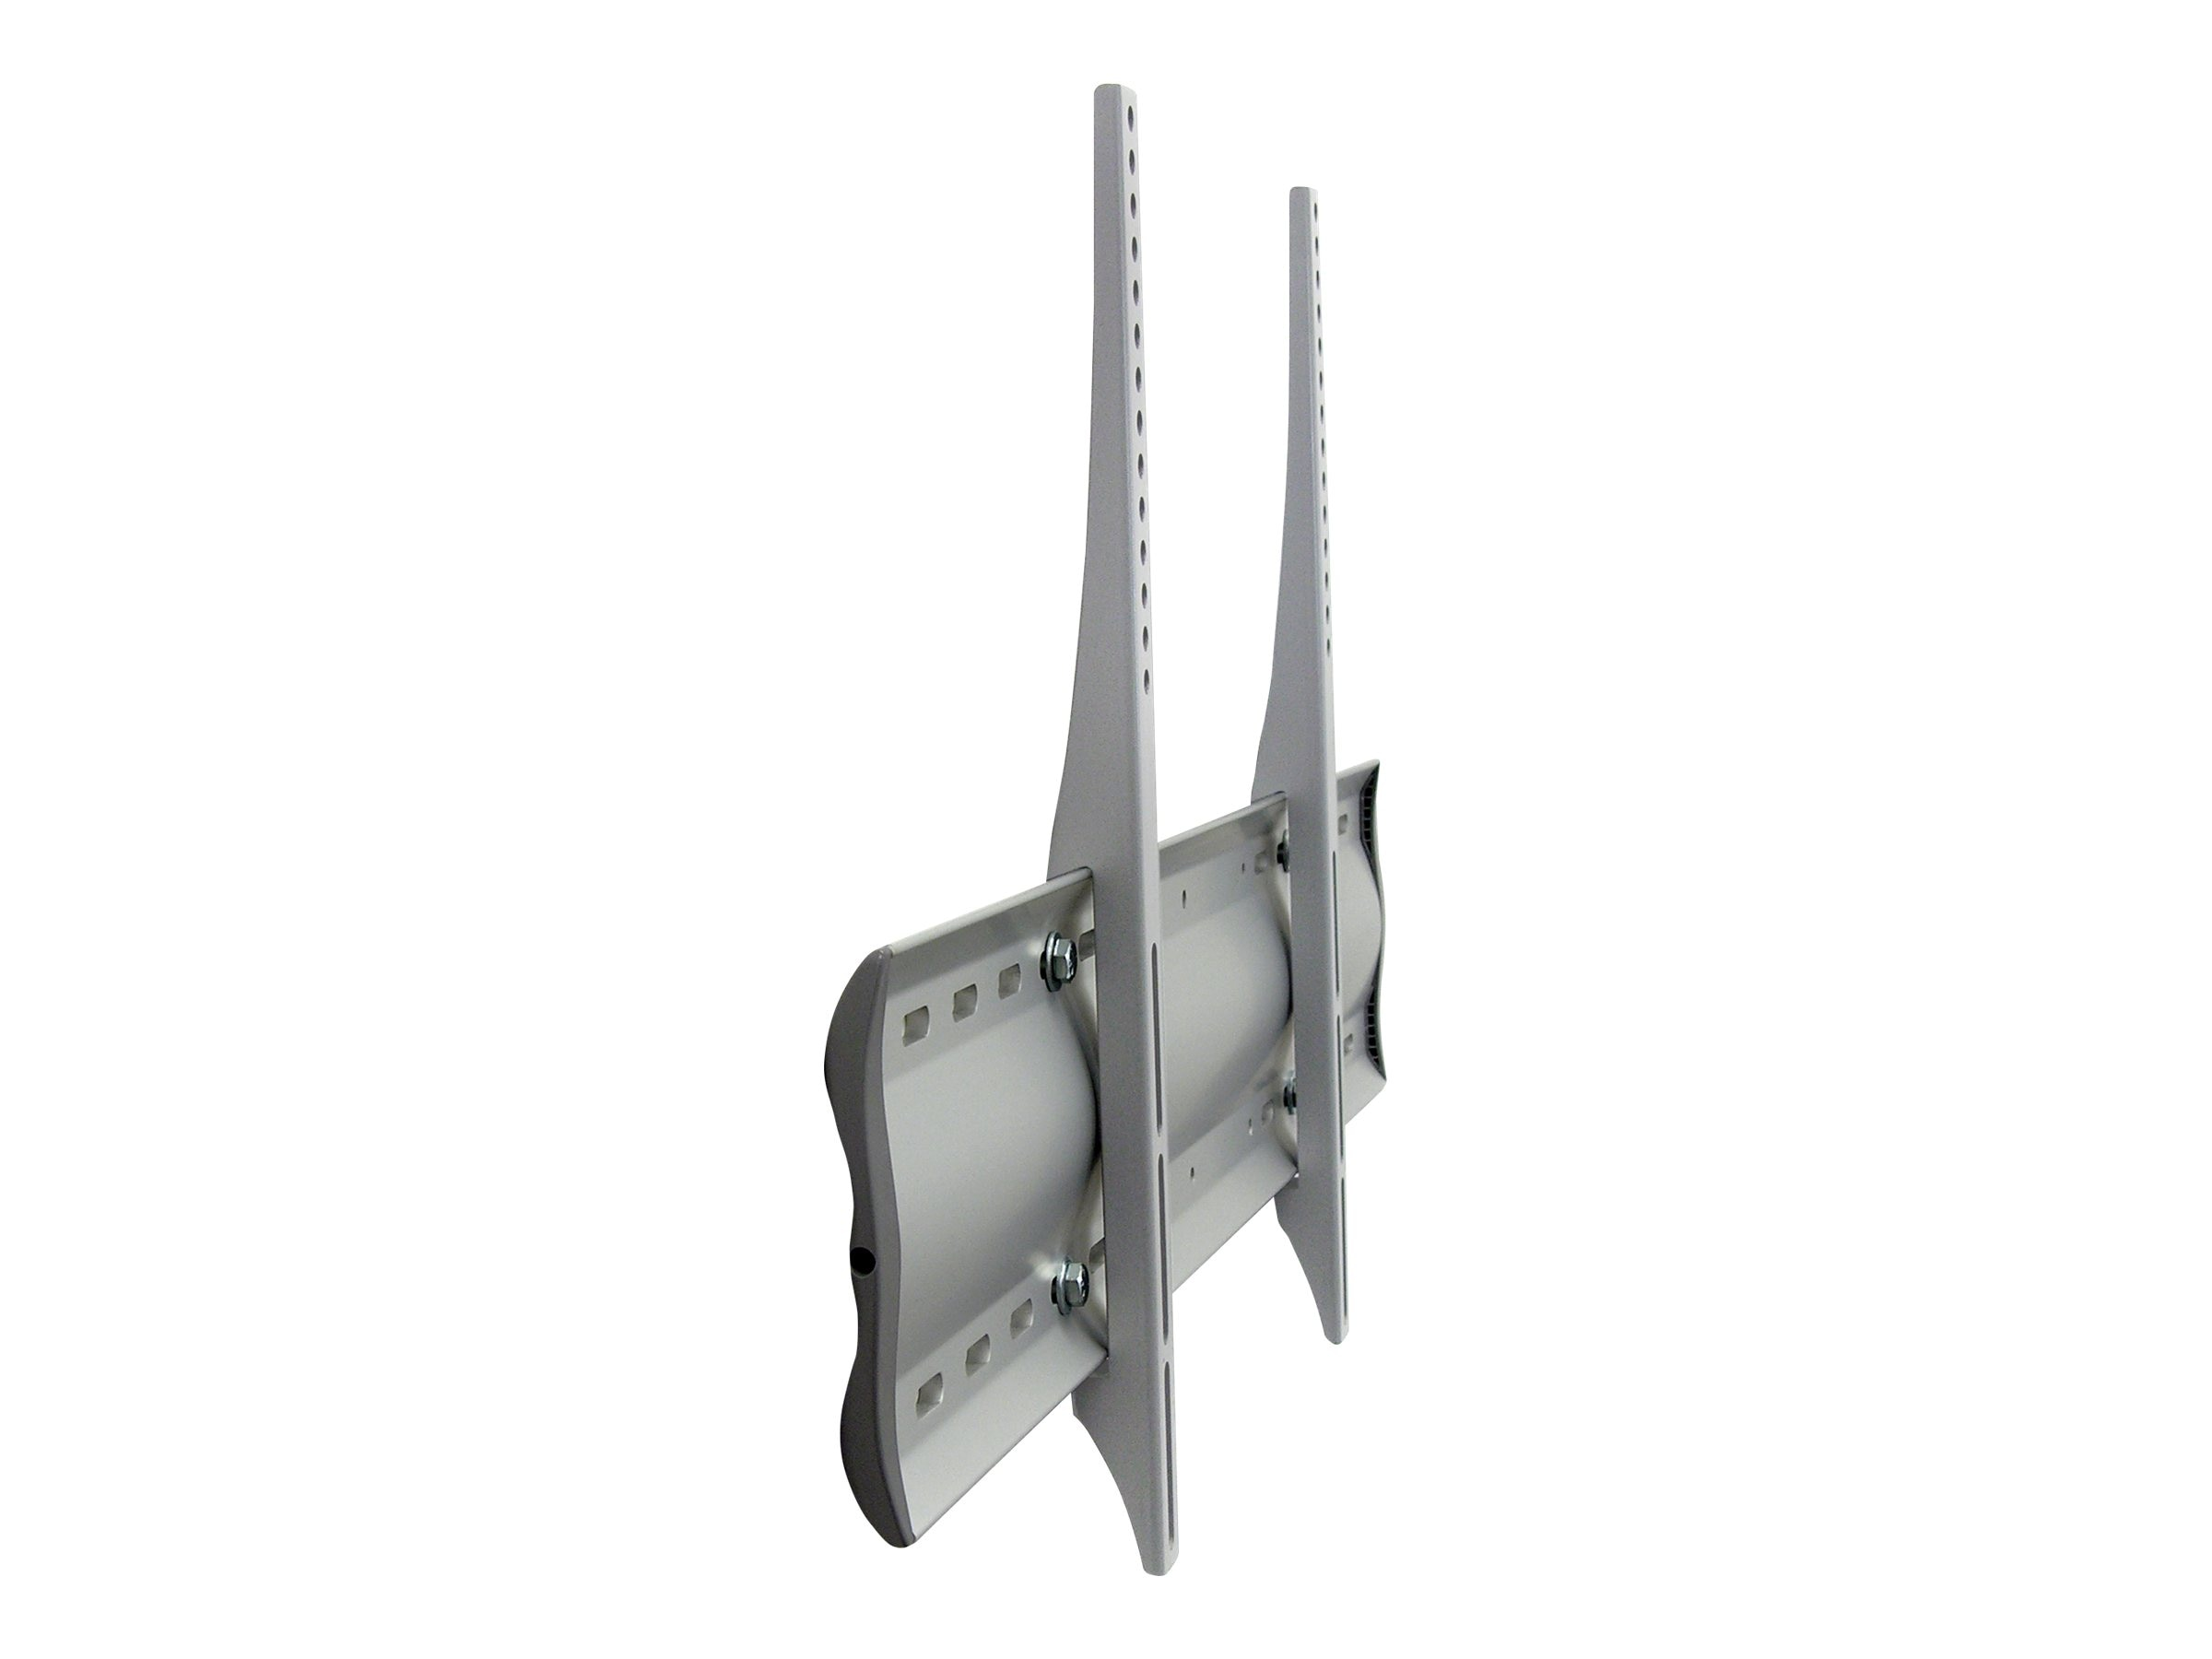 Ergotron XL Low-Profile Wall Mount for Flat Panels 42 or Greater, 60-602-003, 10805970, Stands & Mounts - AV